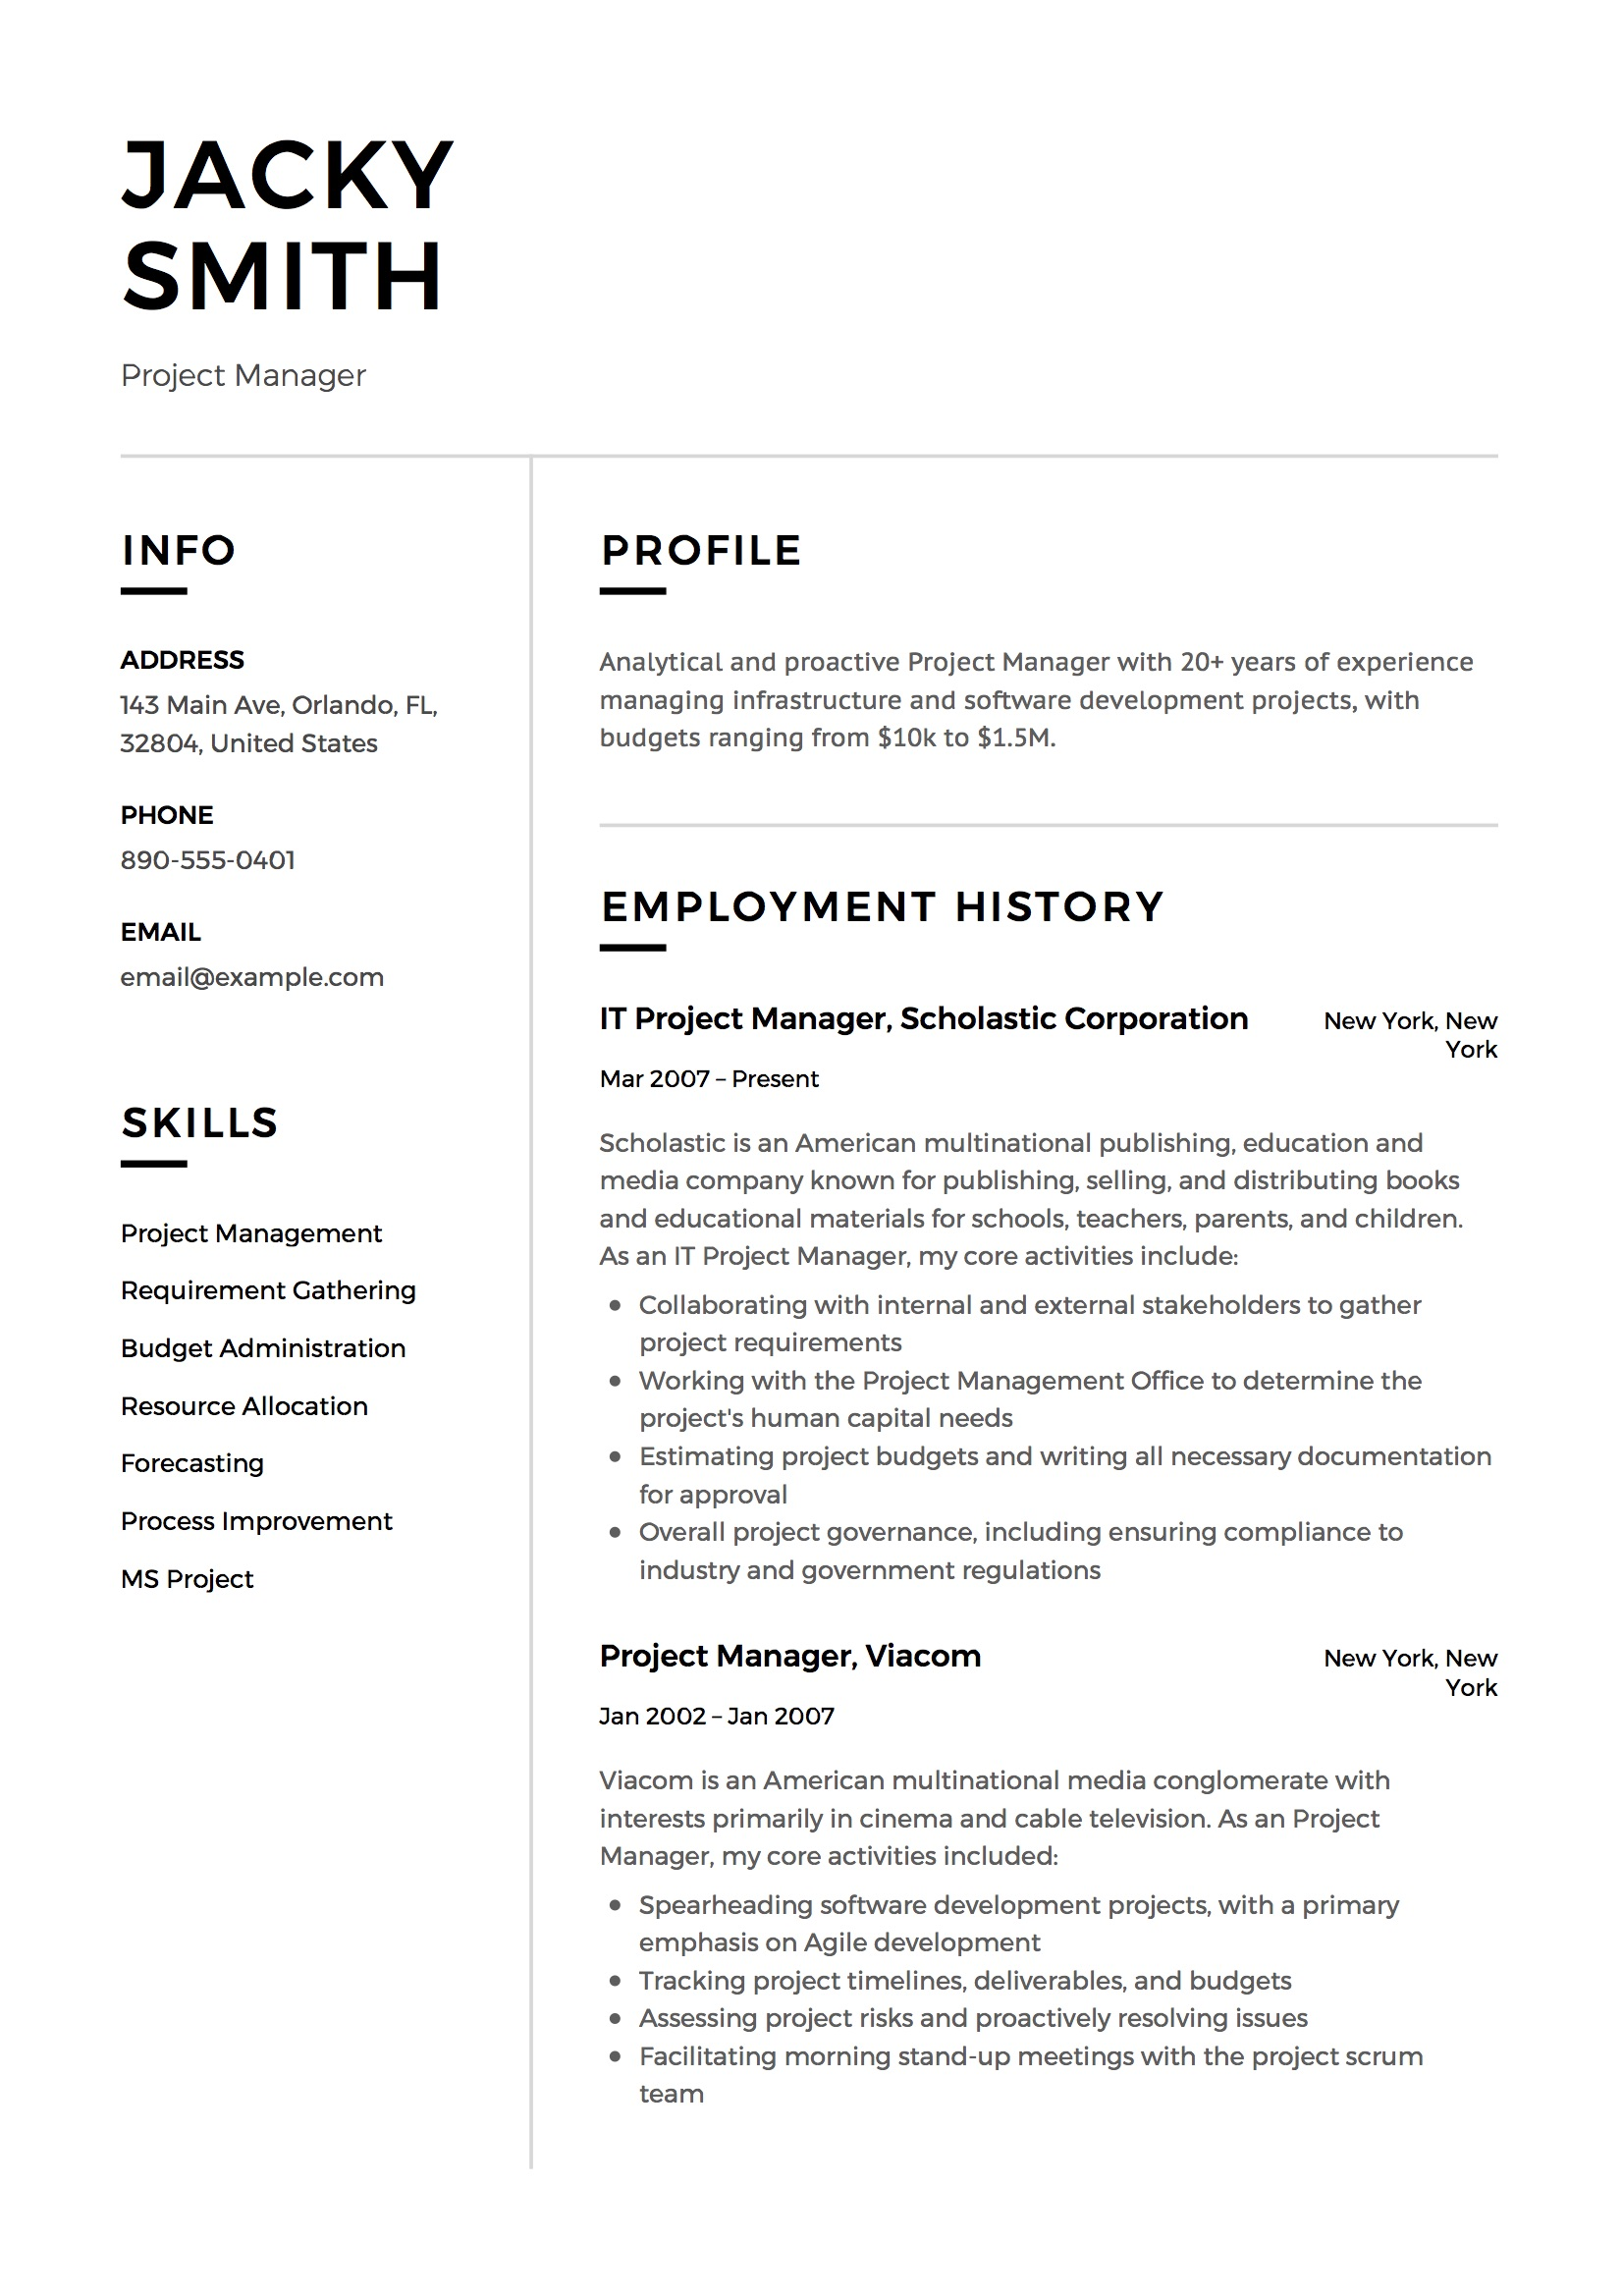 resume projects section samples